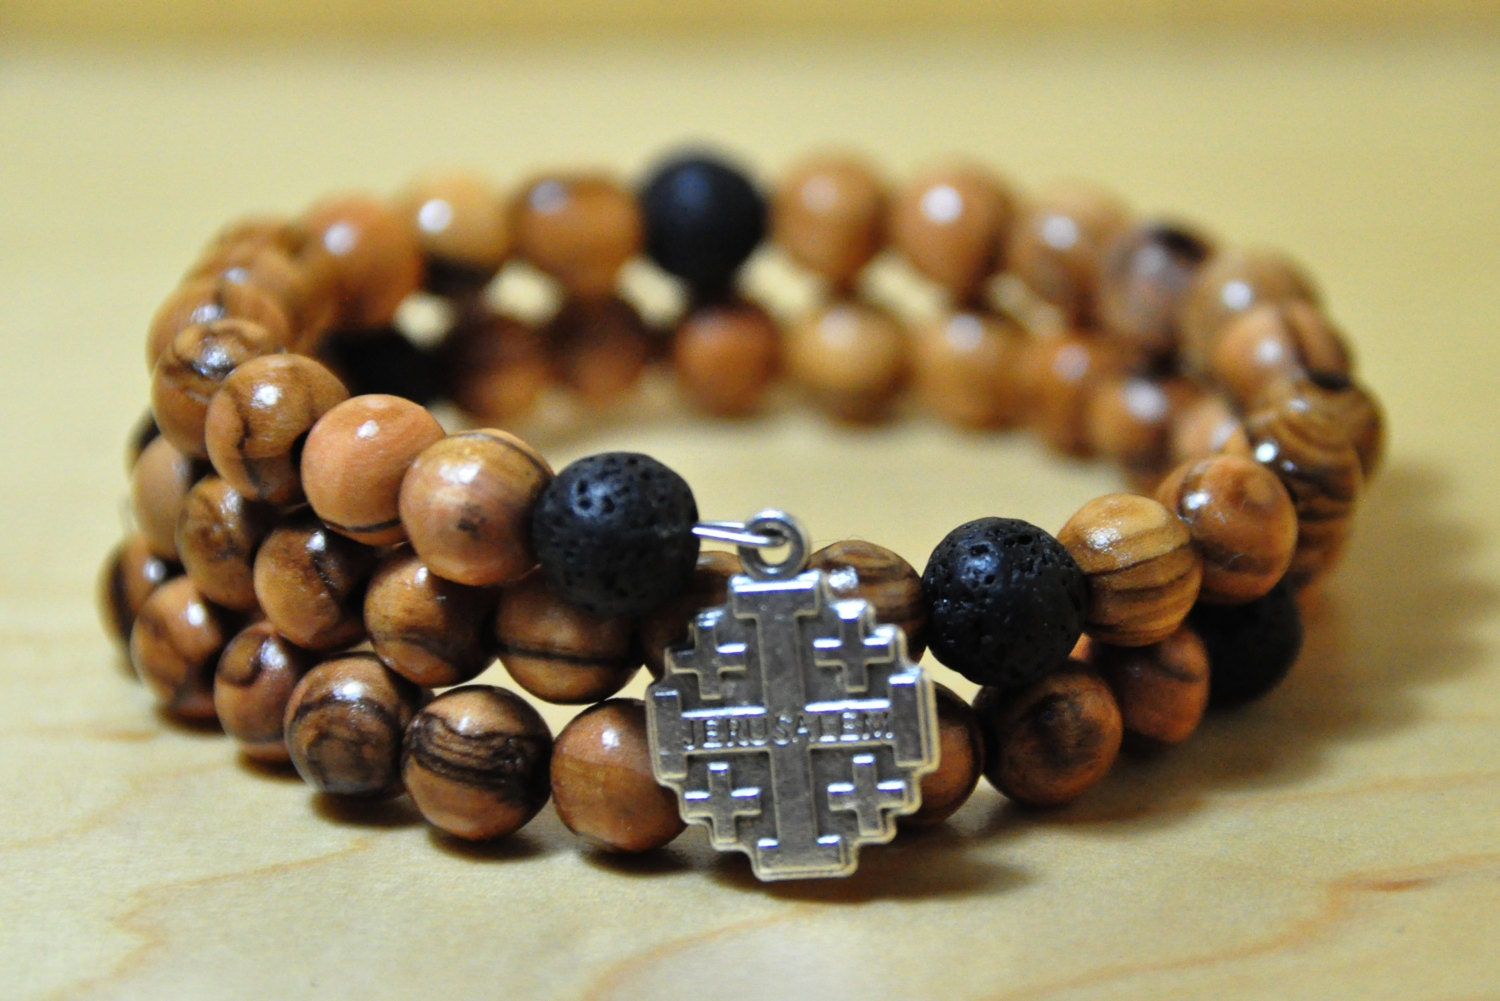 Olive Wood Bracelet Rosary Made Of Olive Wood Beads Mixed With